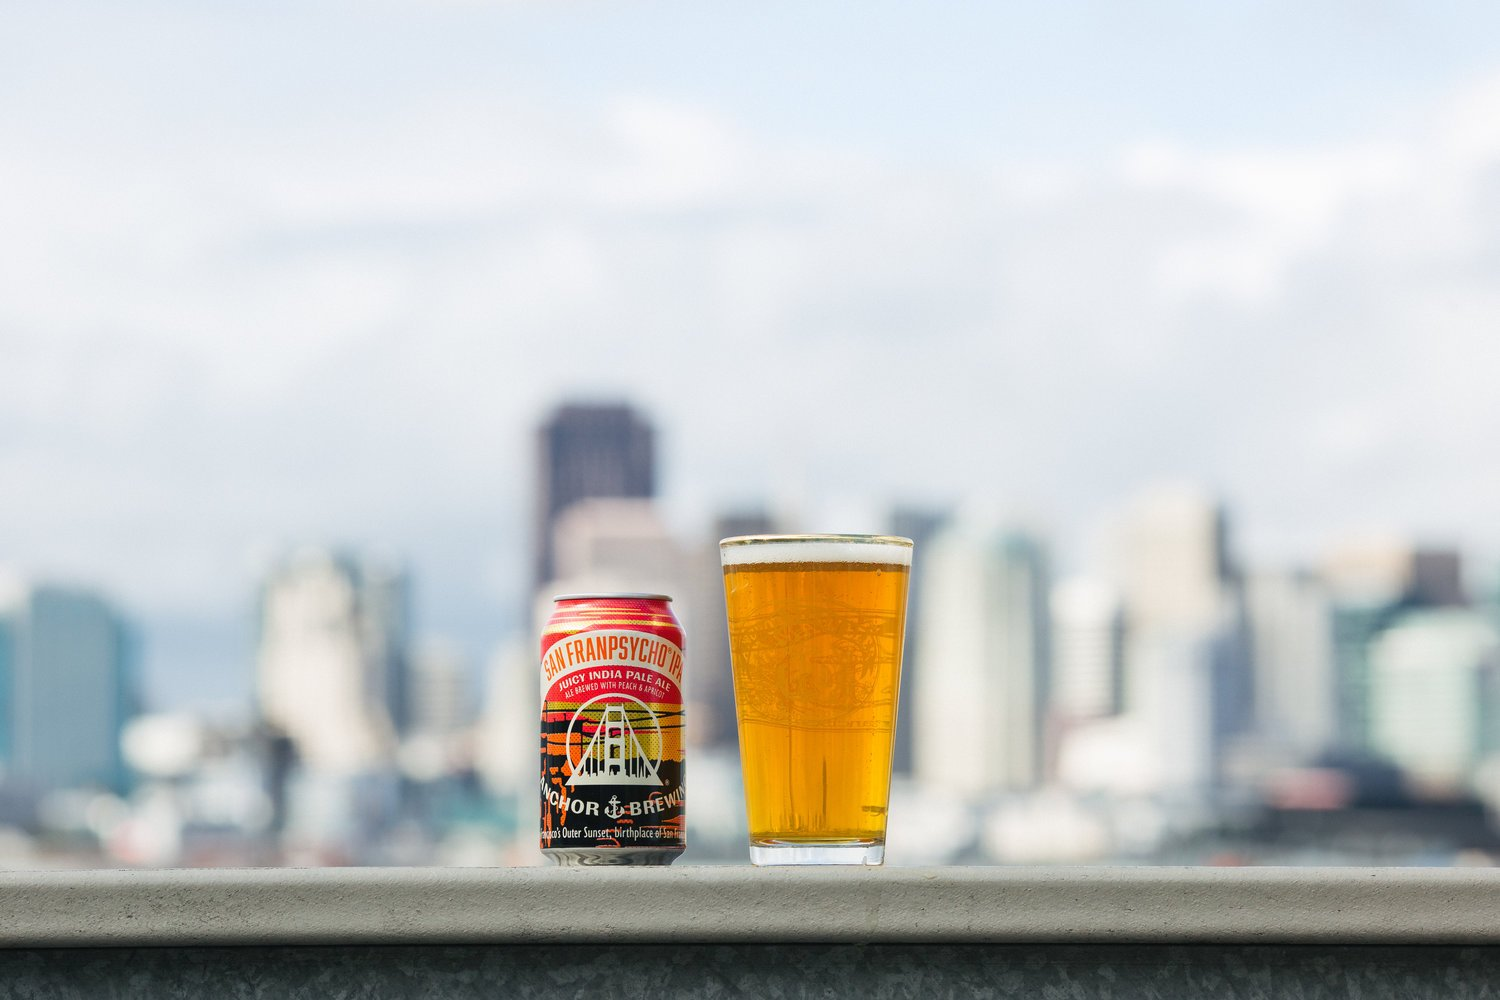 Anchor Brewing is re-releasing its award-winning San Franpsycho IPA, produced in collaboration with the apparel and lifestye brand San Franpsycho.